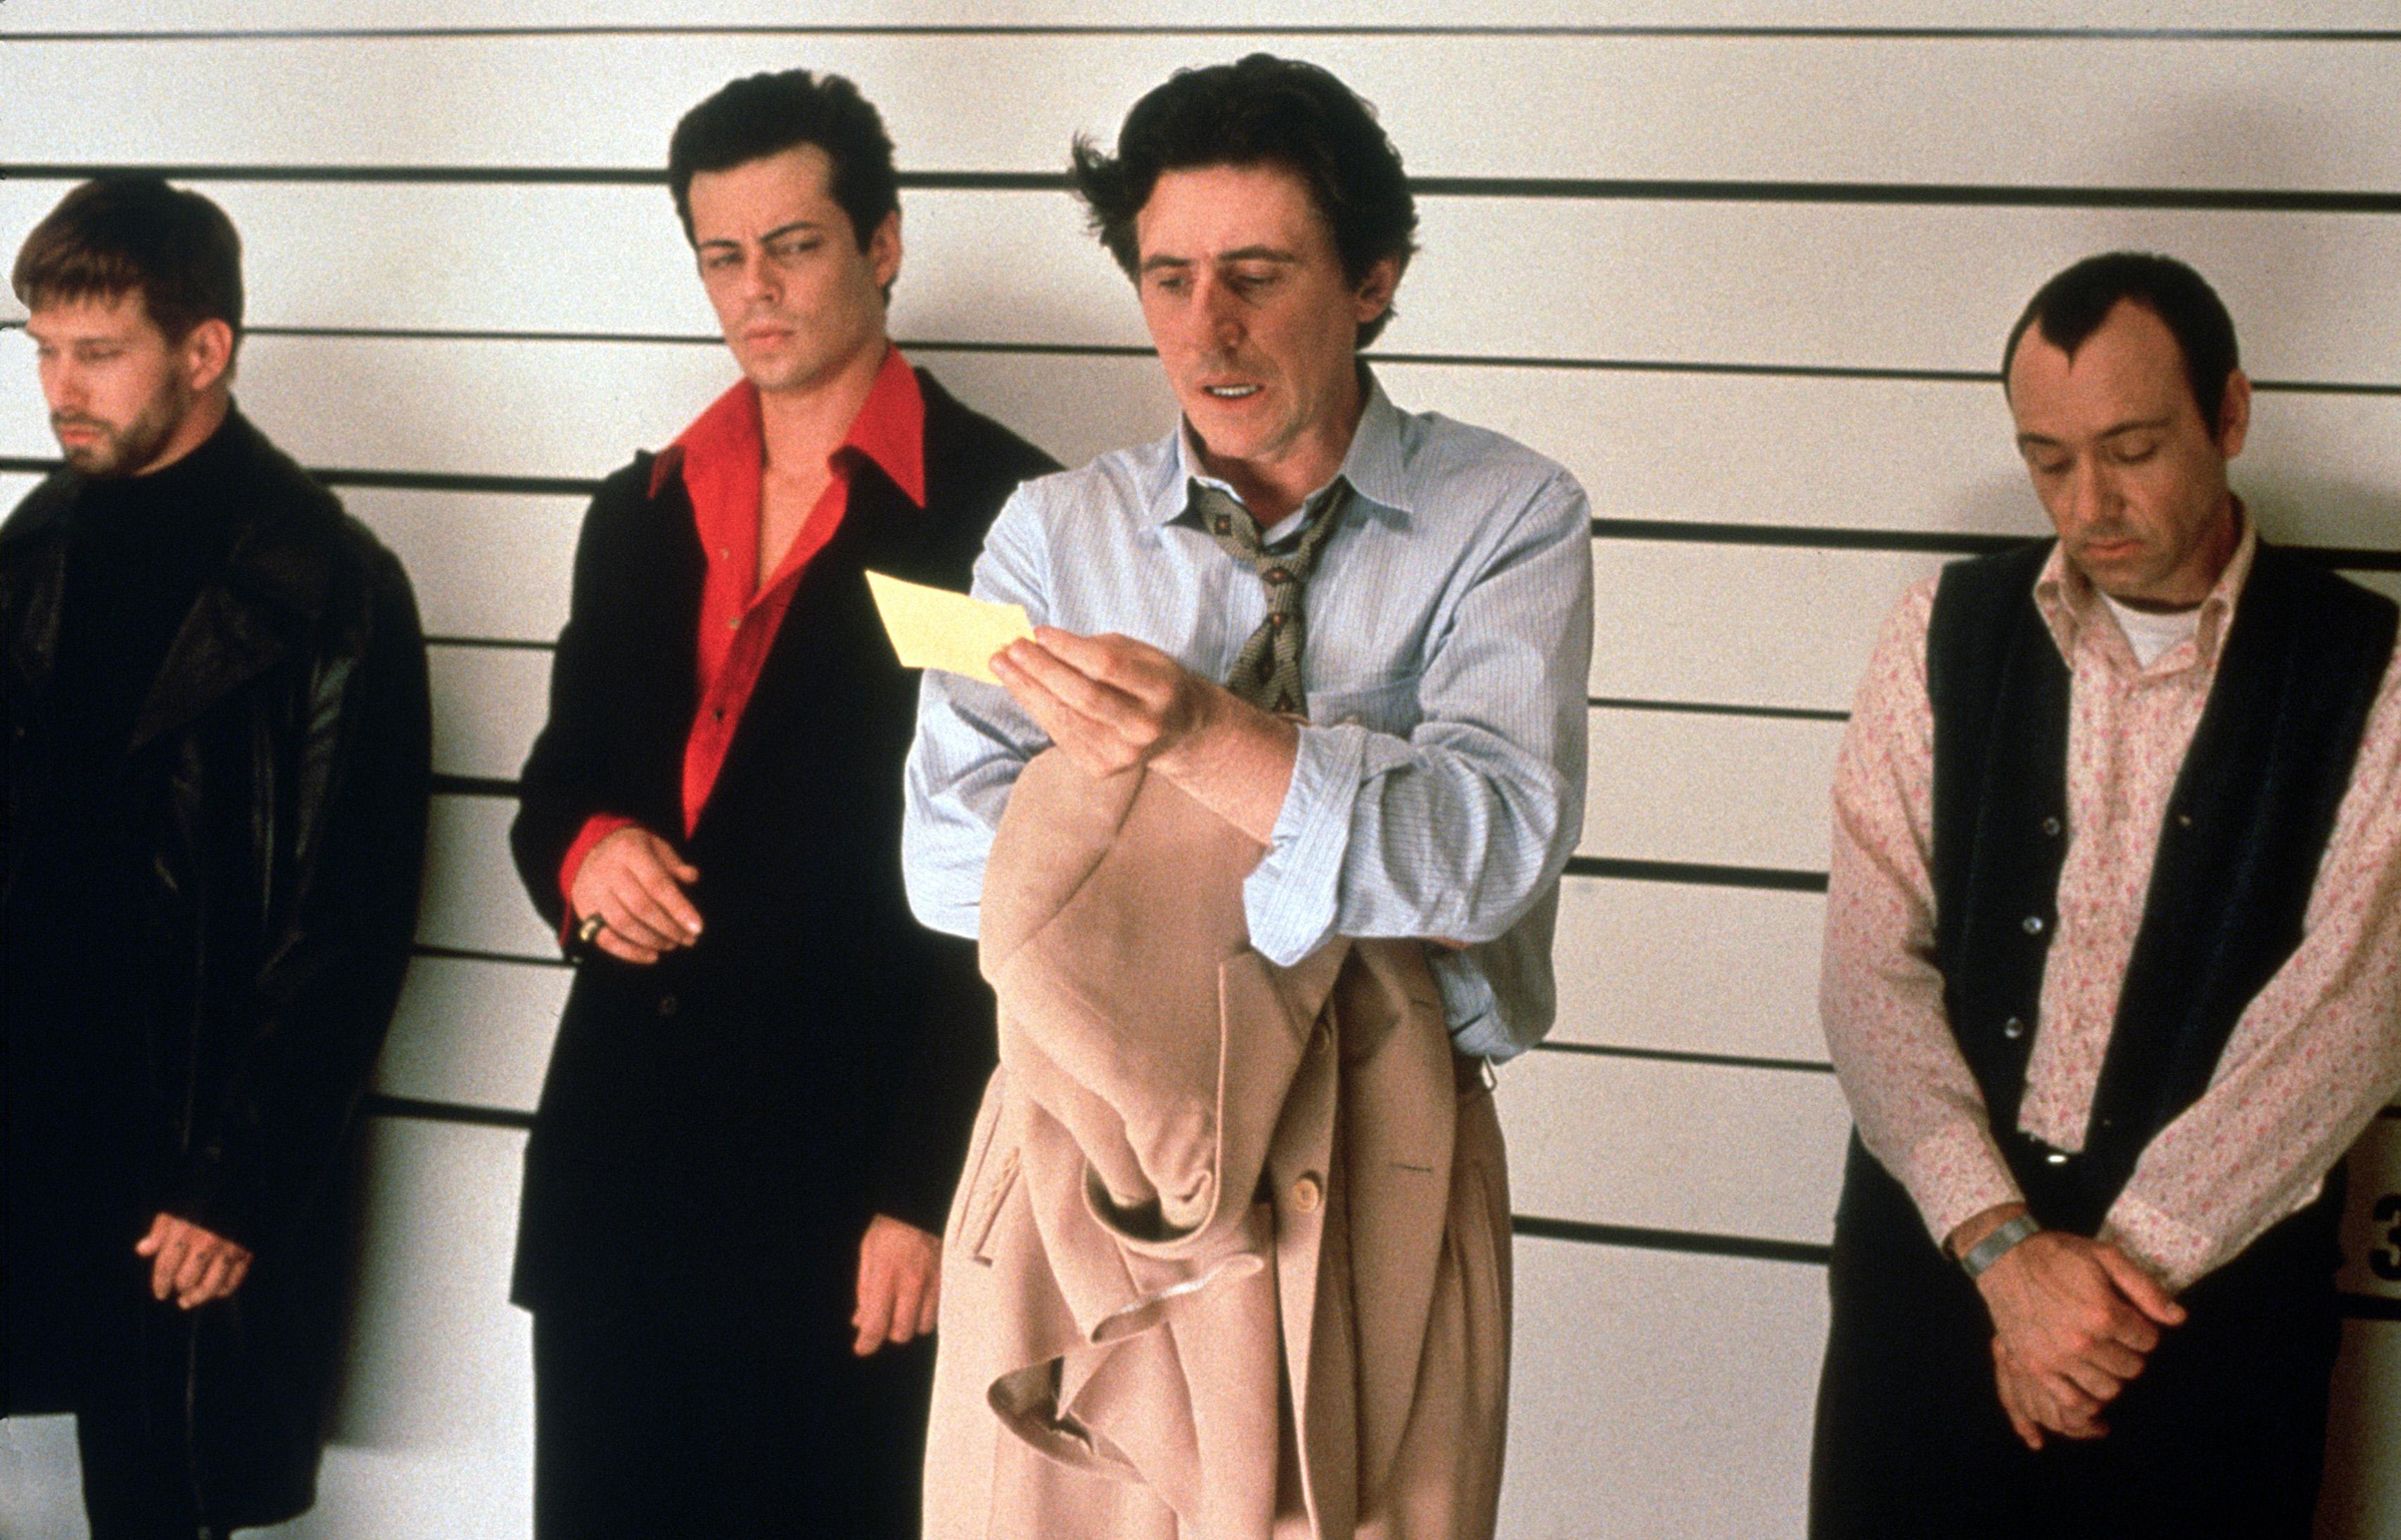 gramercypictures_the-usual-suspects_648c091d